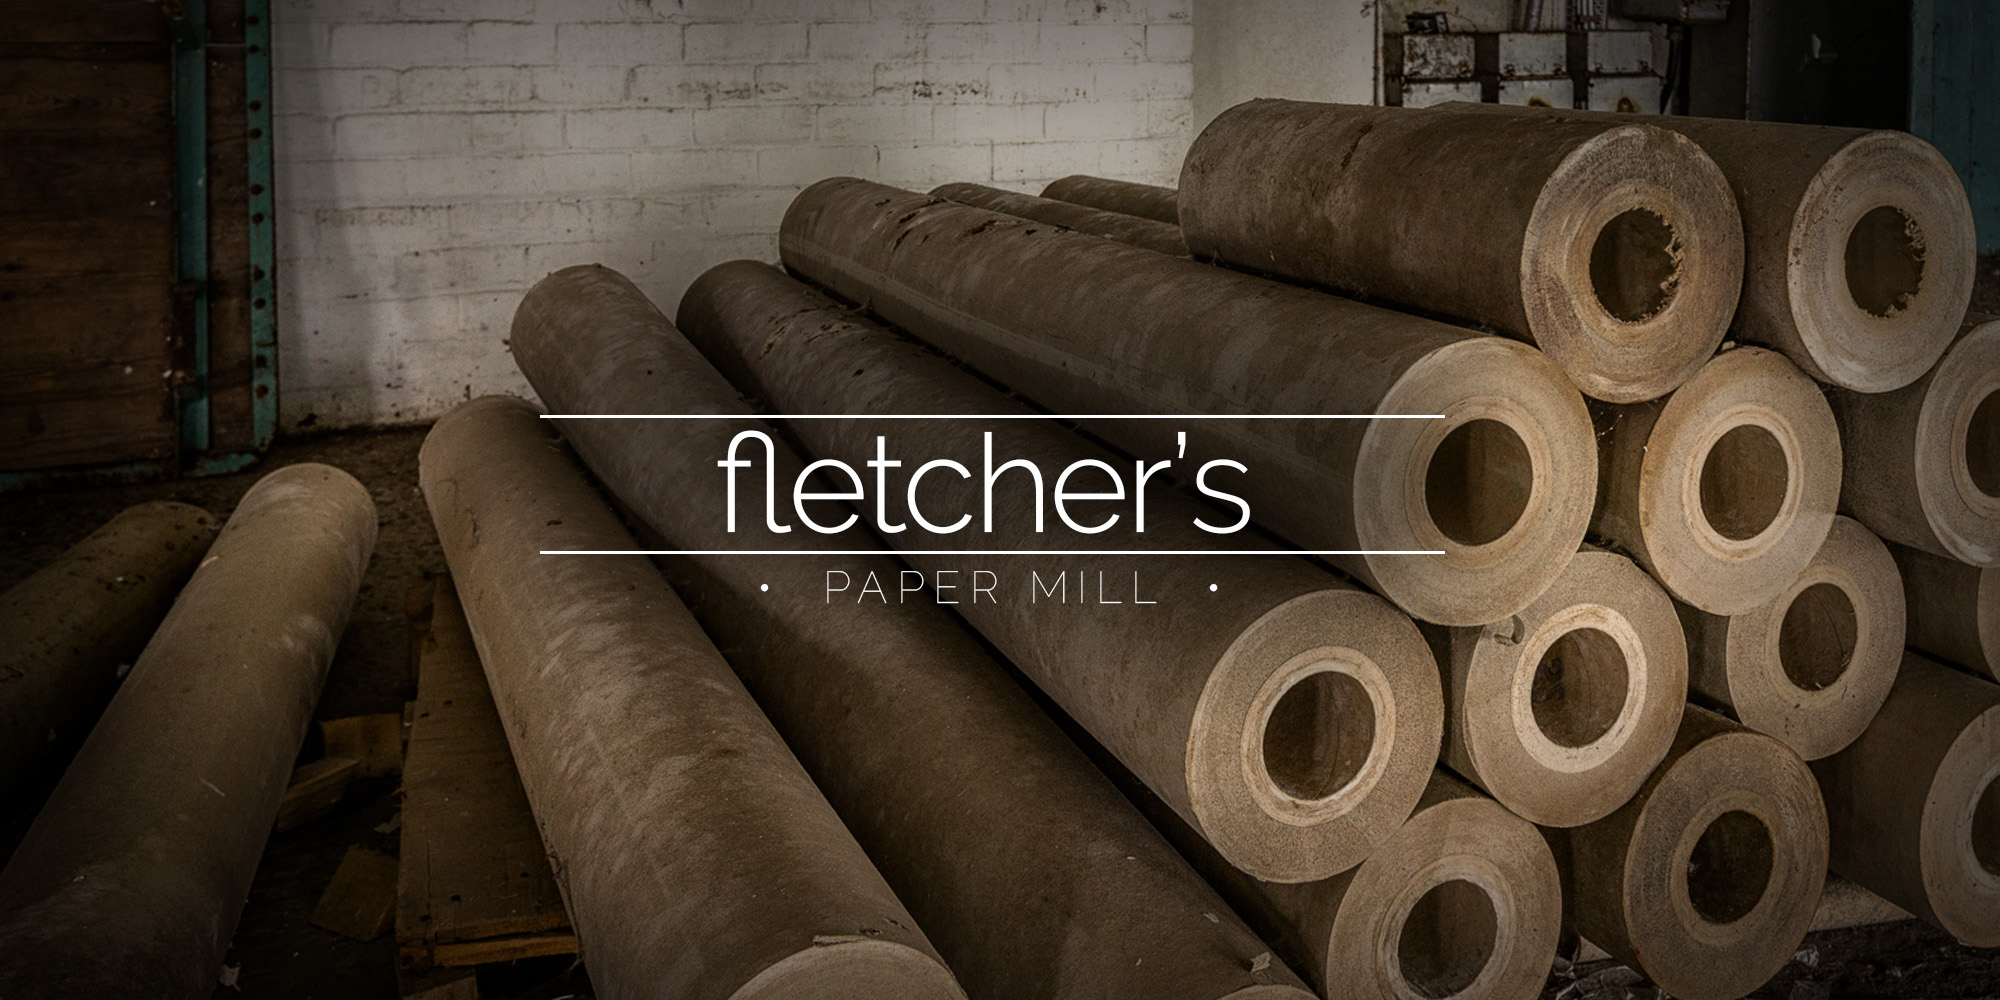 Robert Fletchers Paper Mill, Oldham